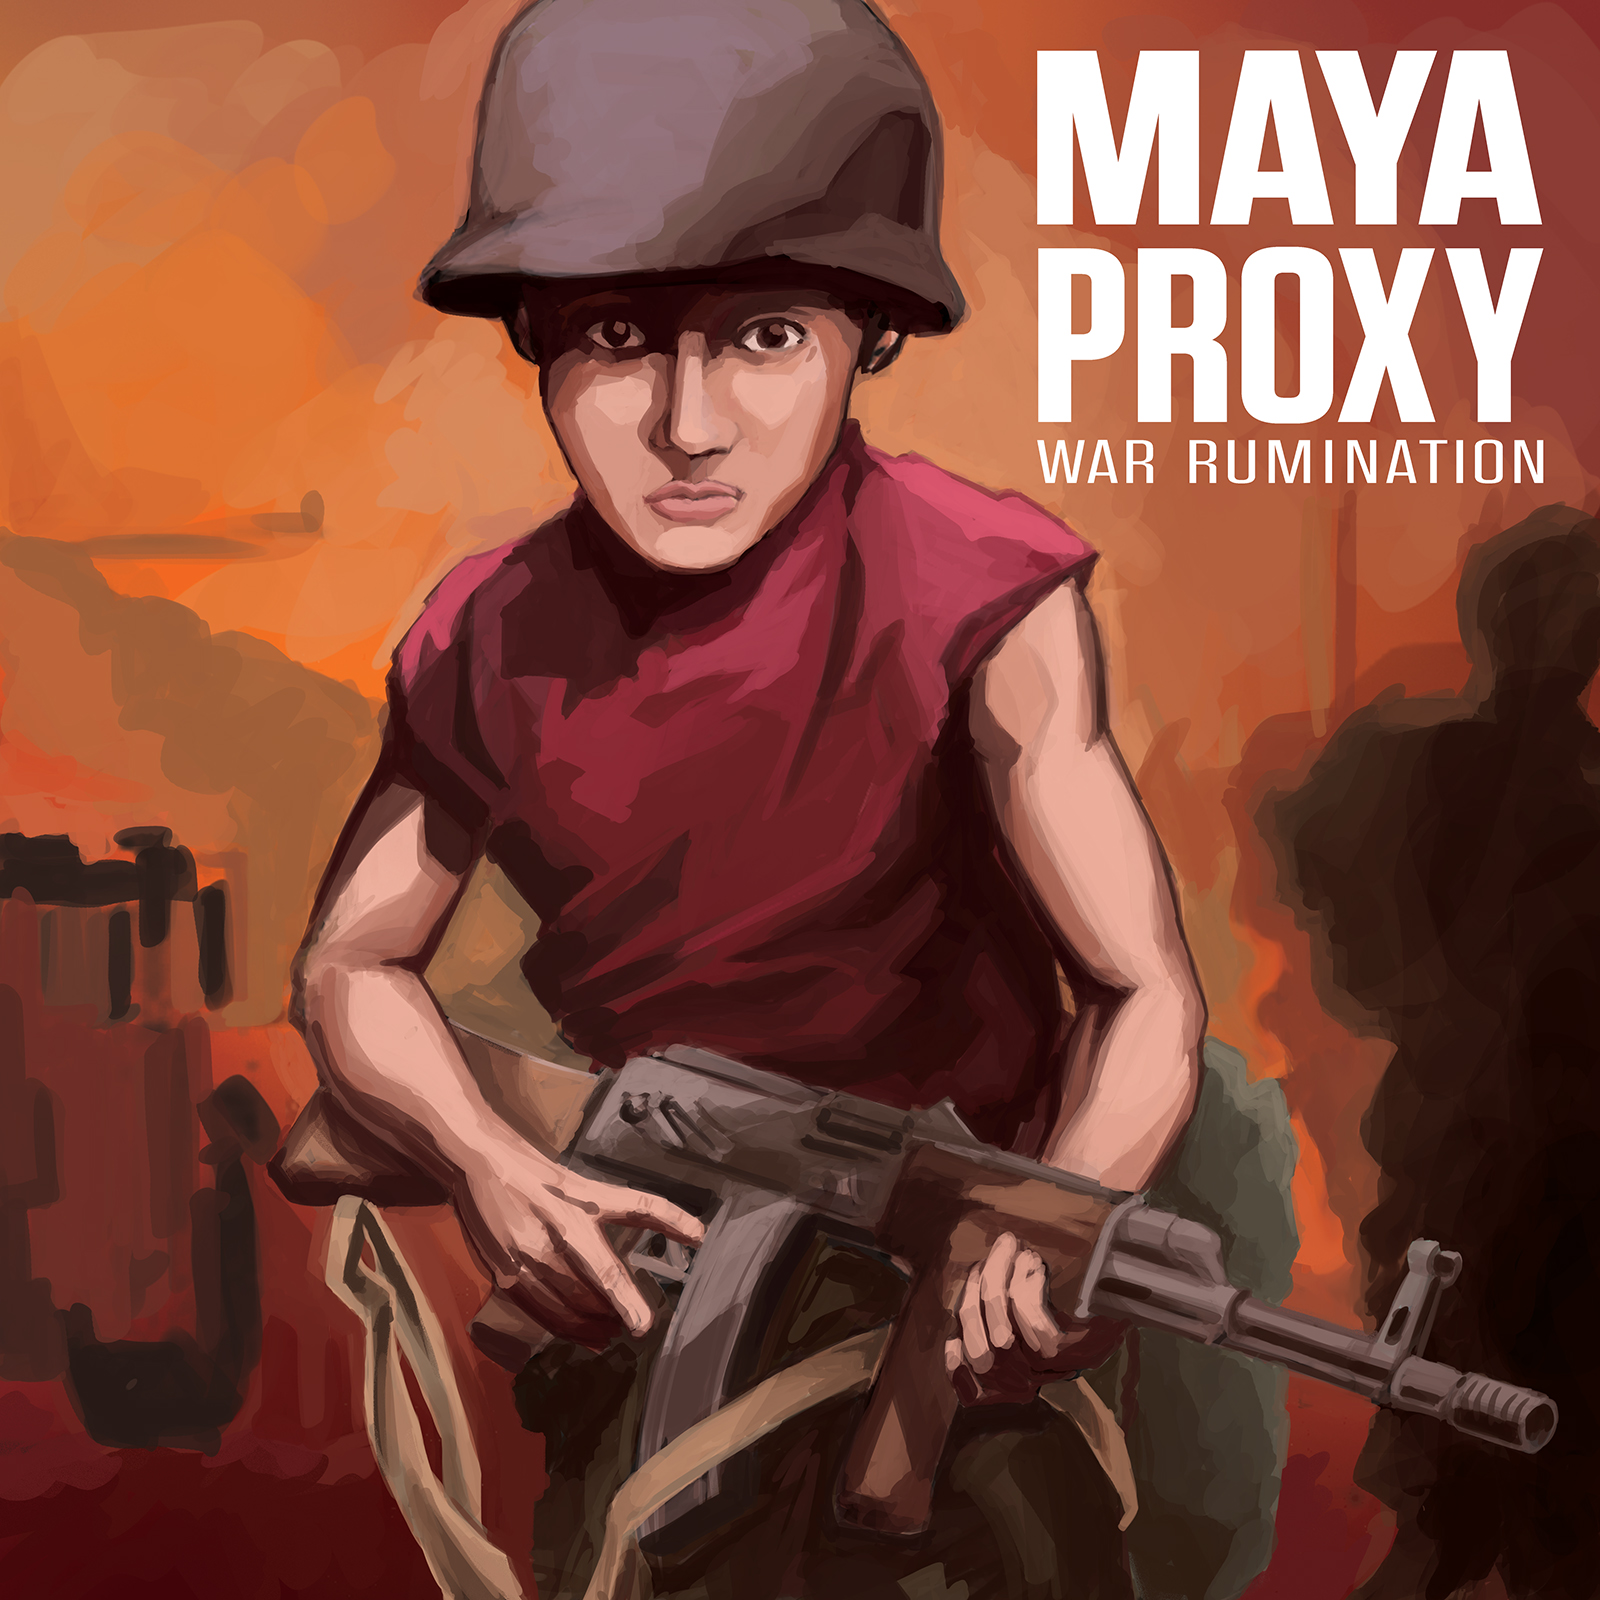 Maya proxy album cover